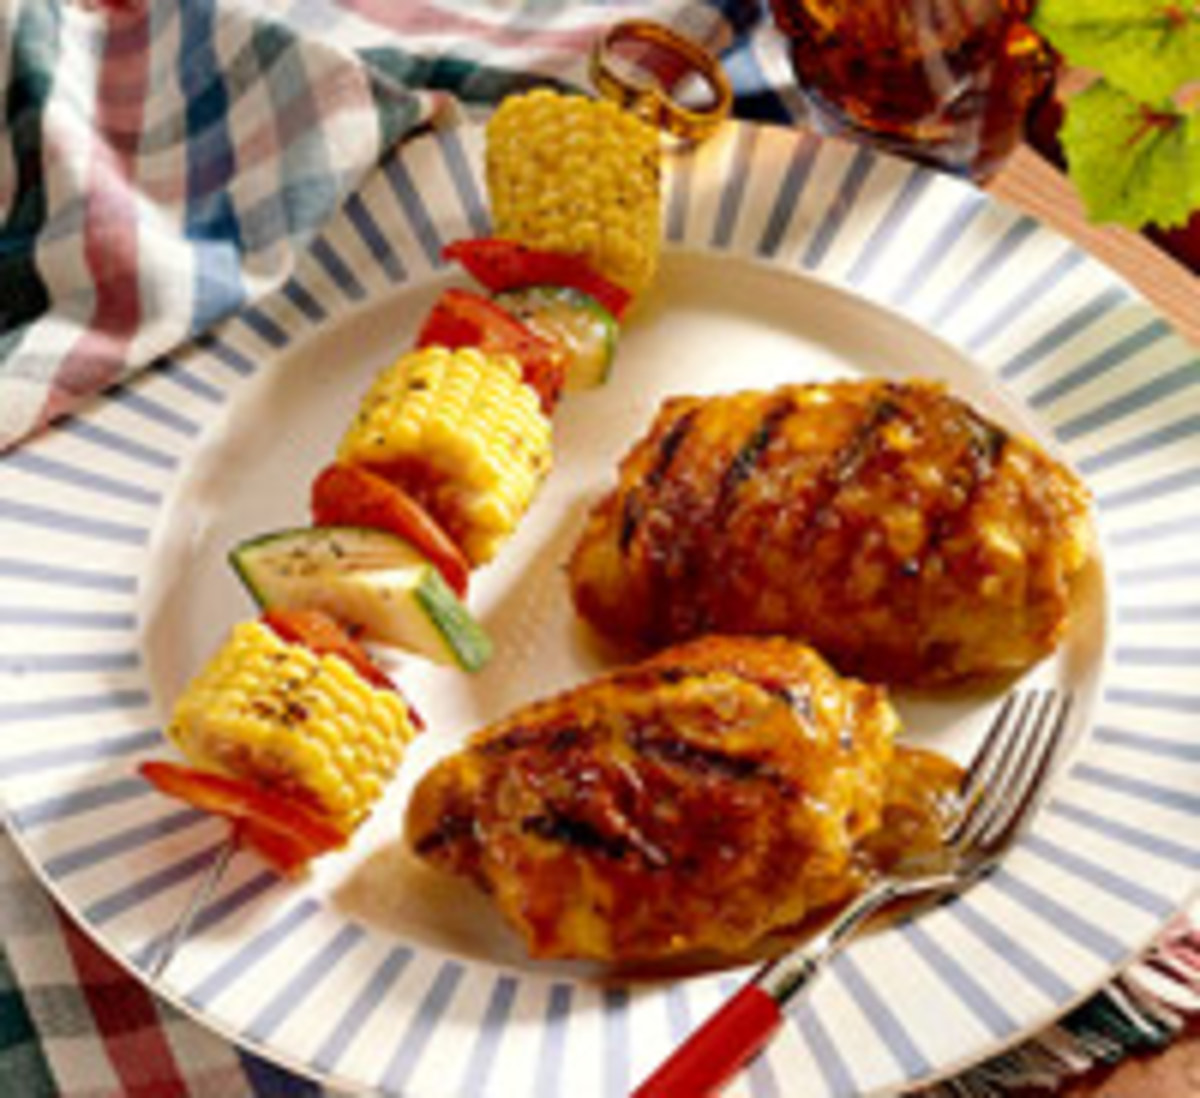 I fix skewers of baby corn on the cob , red bell pepper and zucchini and serve the skewers of the vegetables along with my skewers of barbecue chicken.